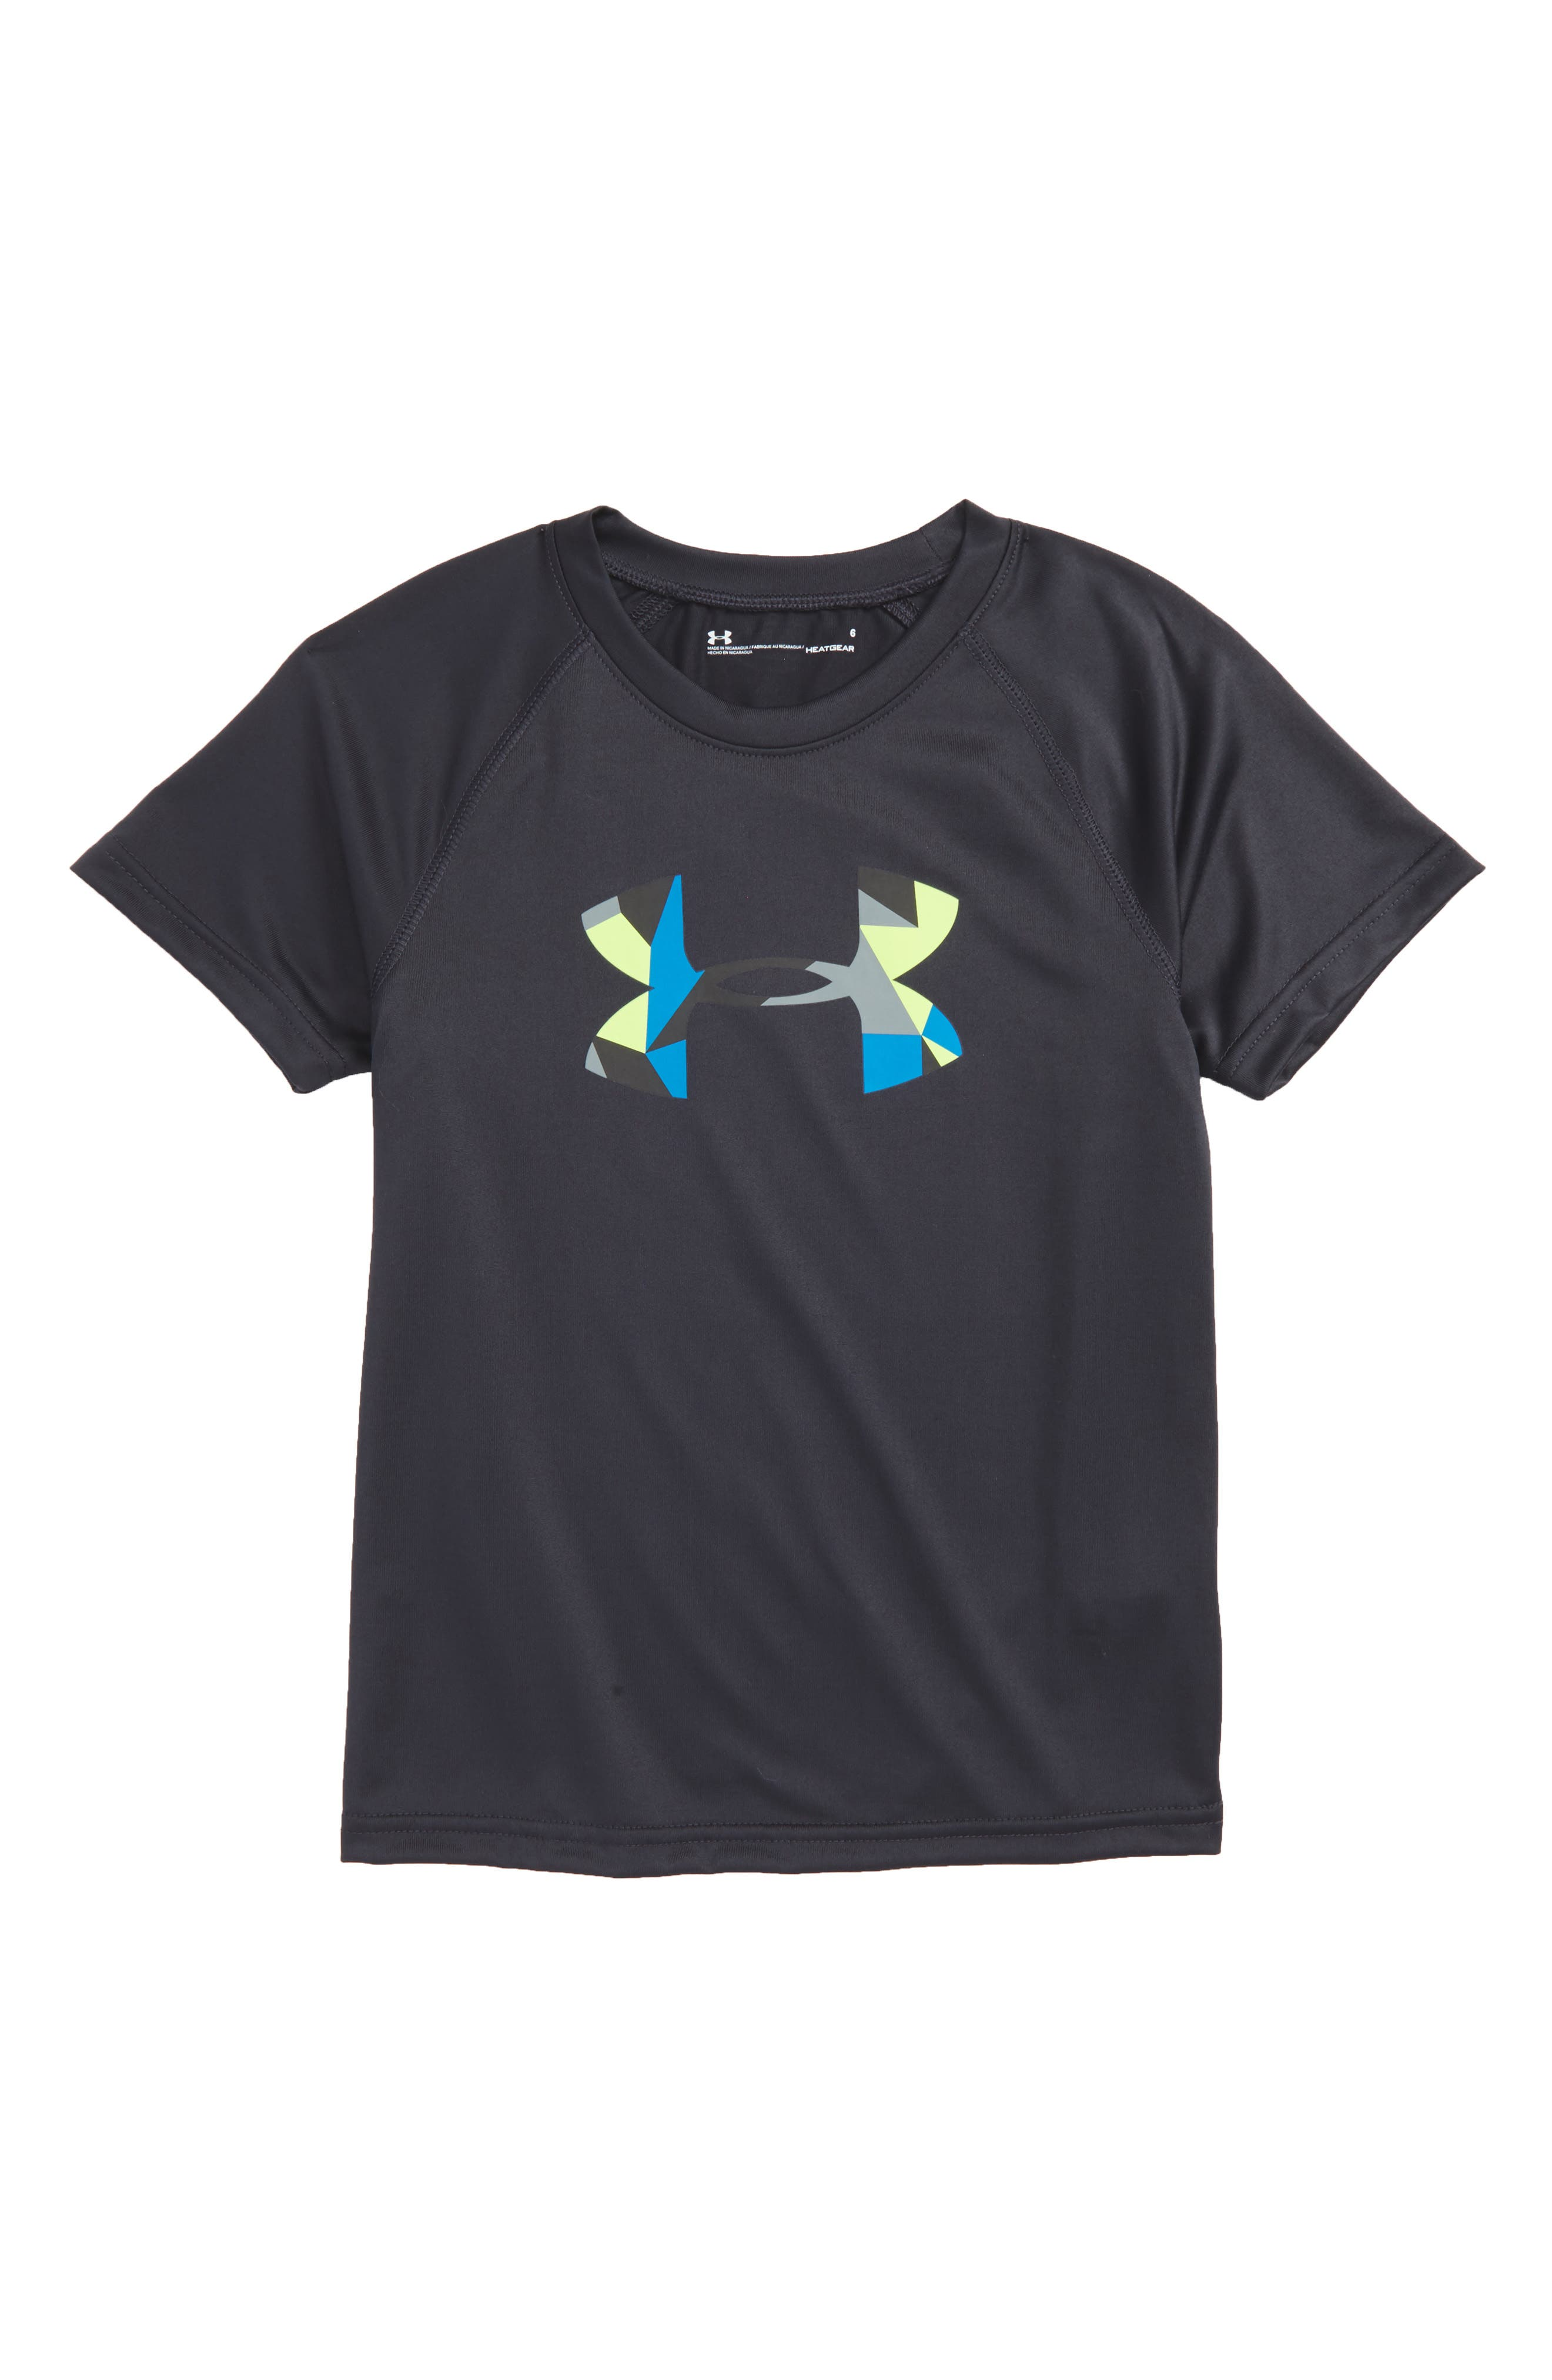 Alternate Image 1 Selected - Under Armour Geo Cache Graphic HeatGear® T-Shirt (Toddler Boys & Little Boys)